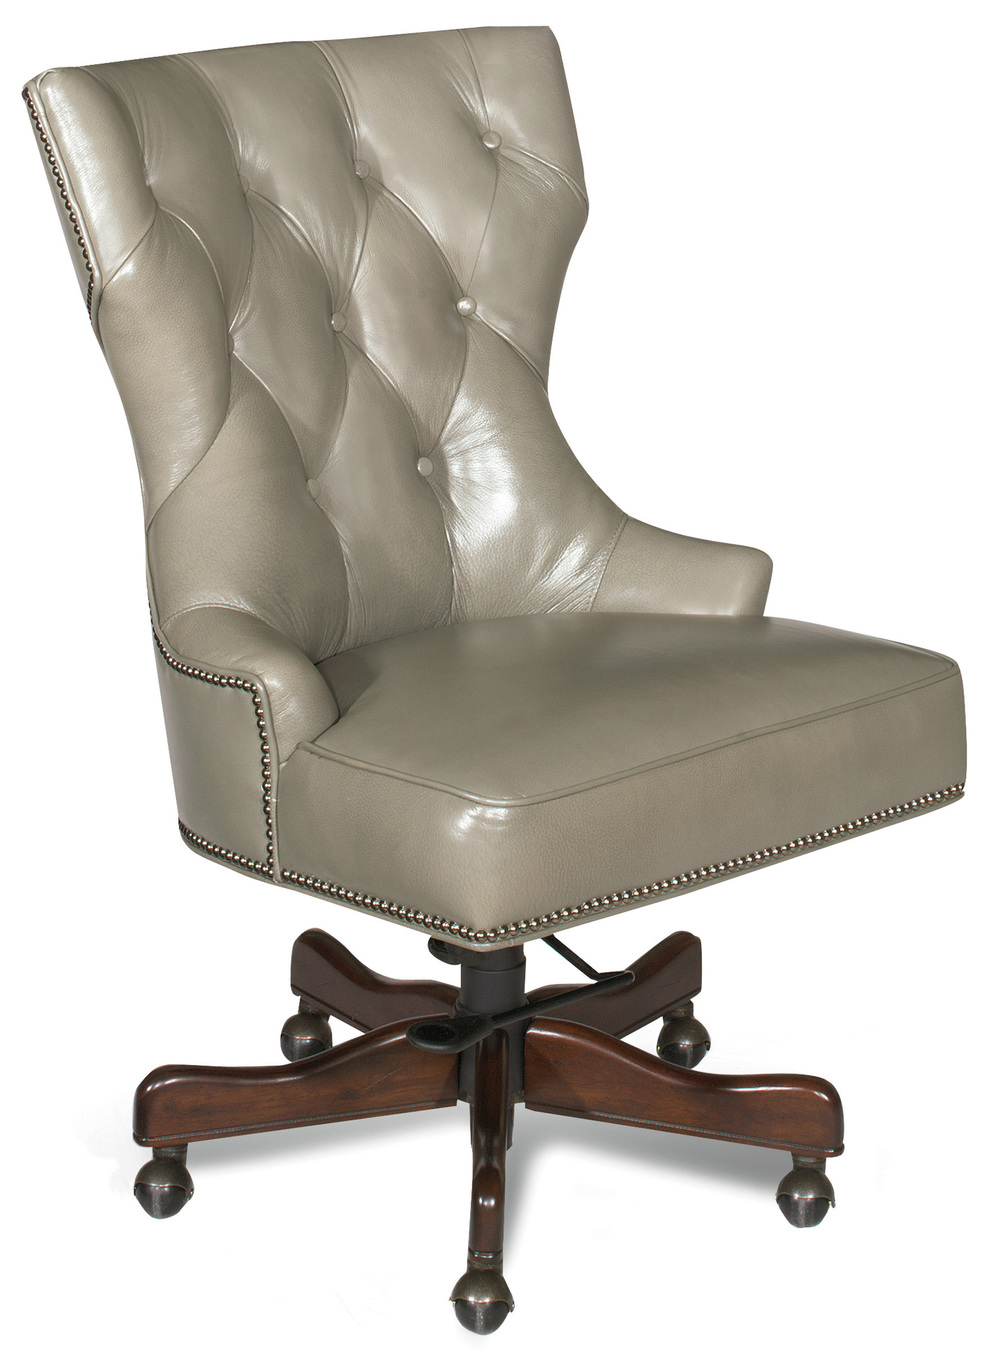 Hooker Furniture - Primm Desk Chair